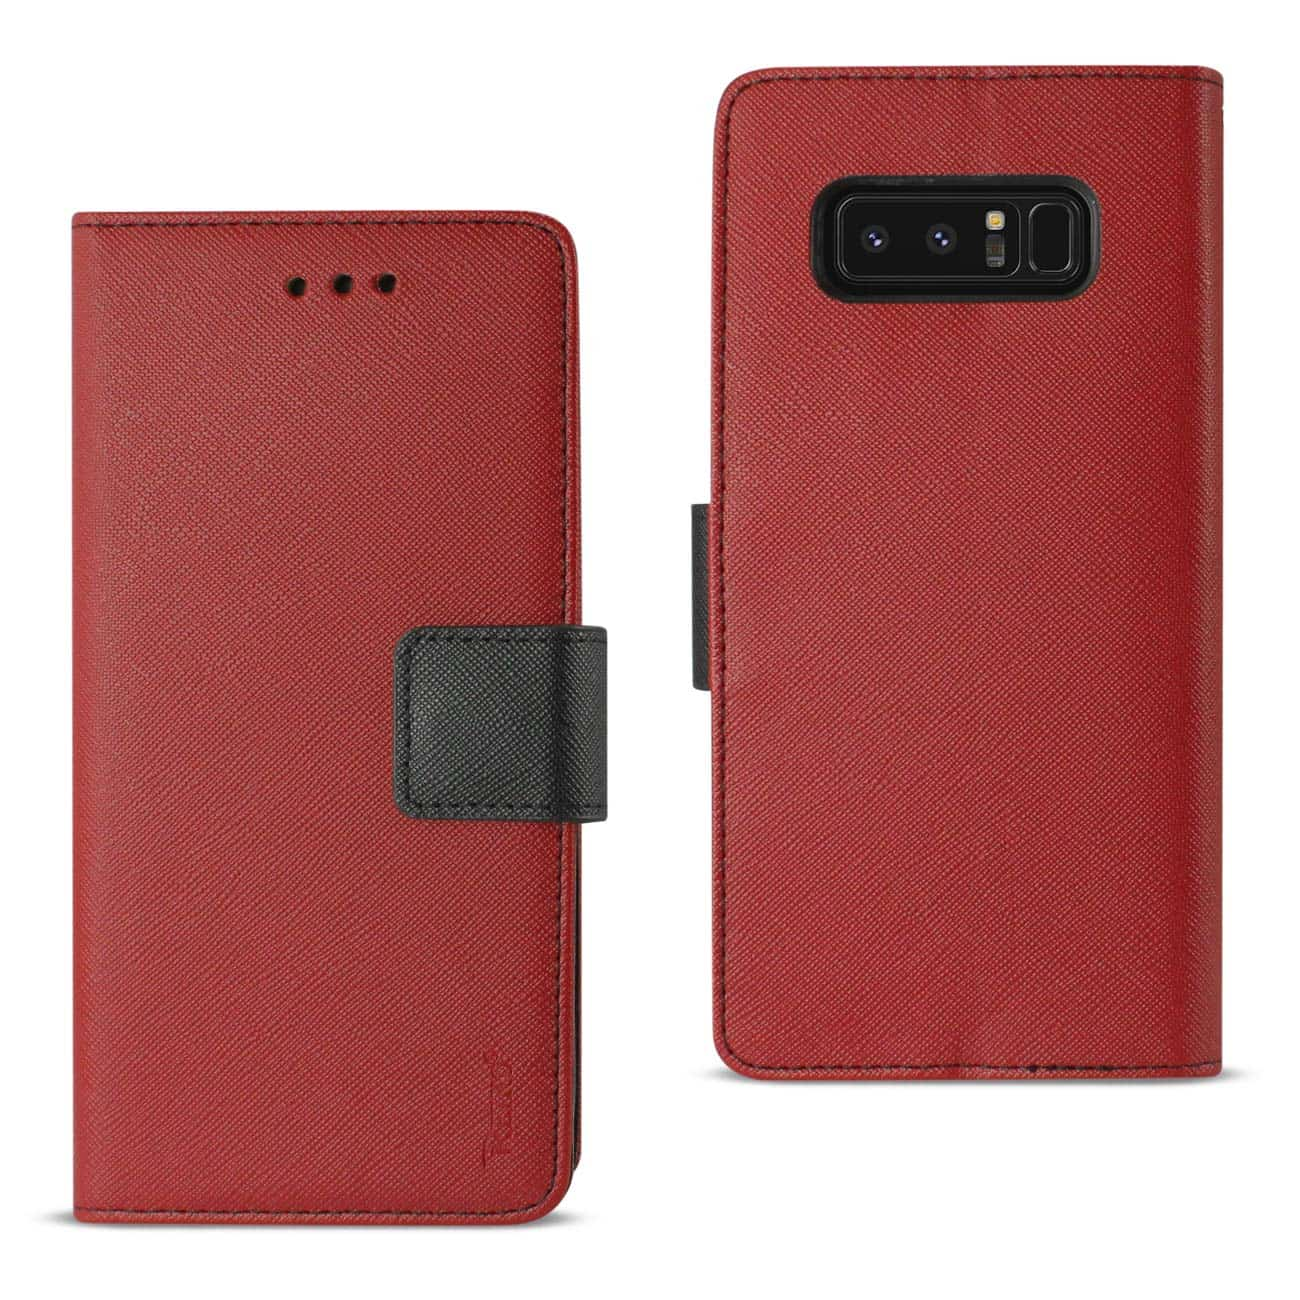 SAMSUNG GALAXY NOTE 8 3-IN-1 WALLET CASE IN RED